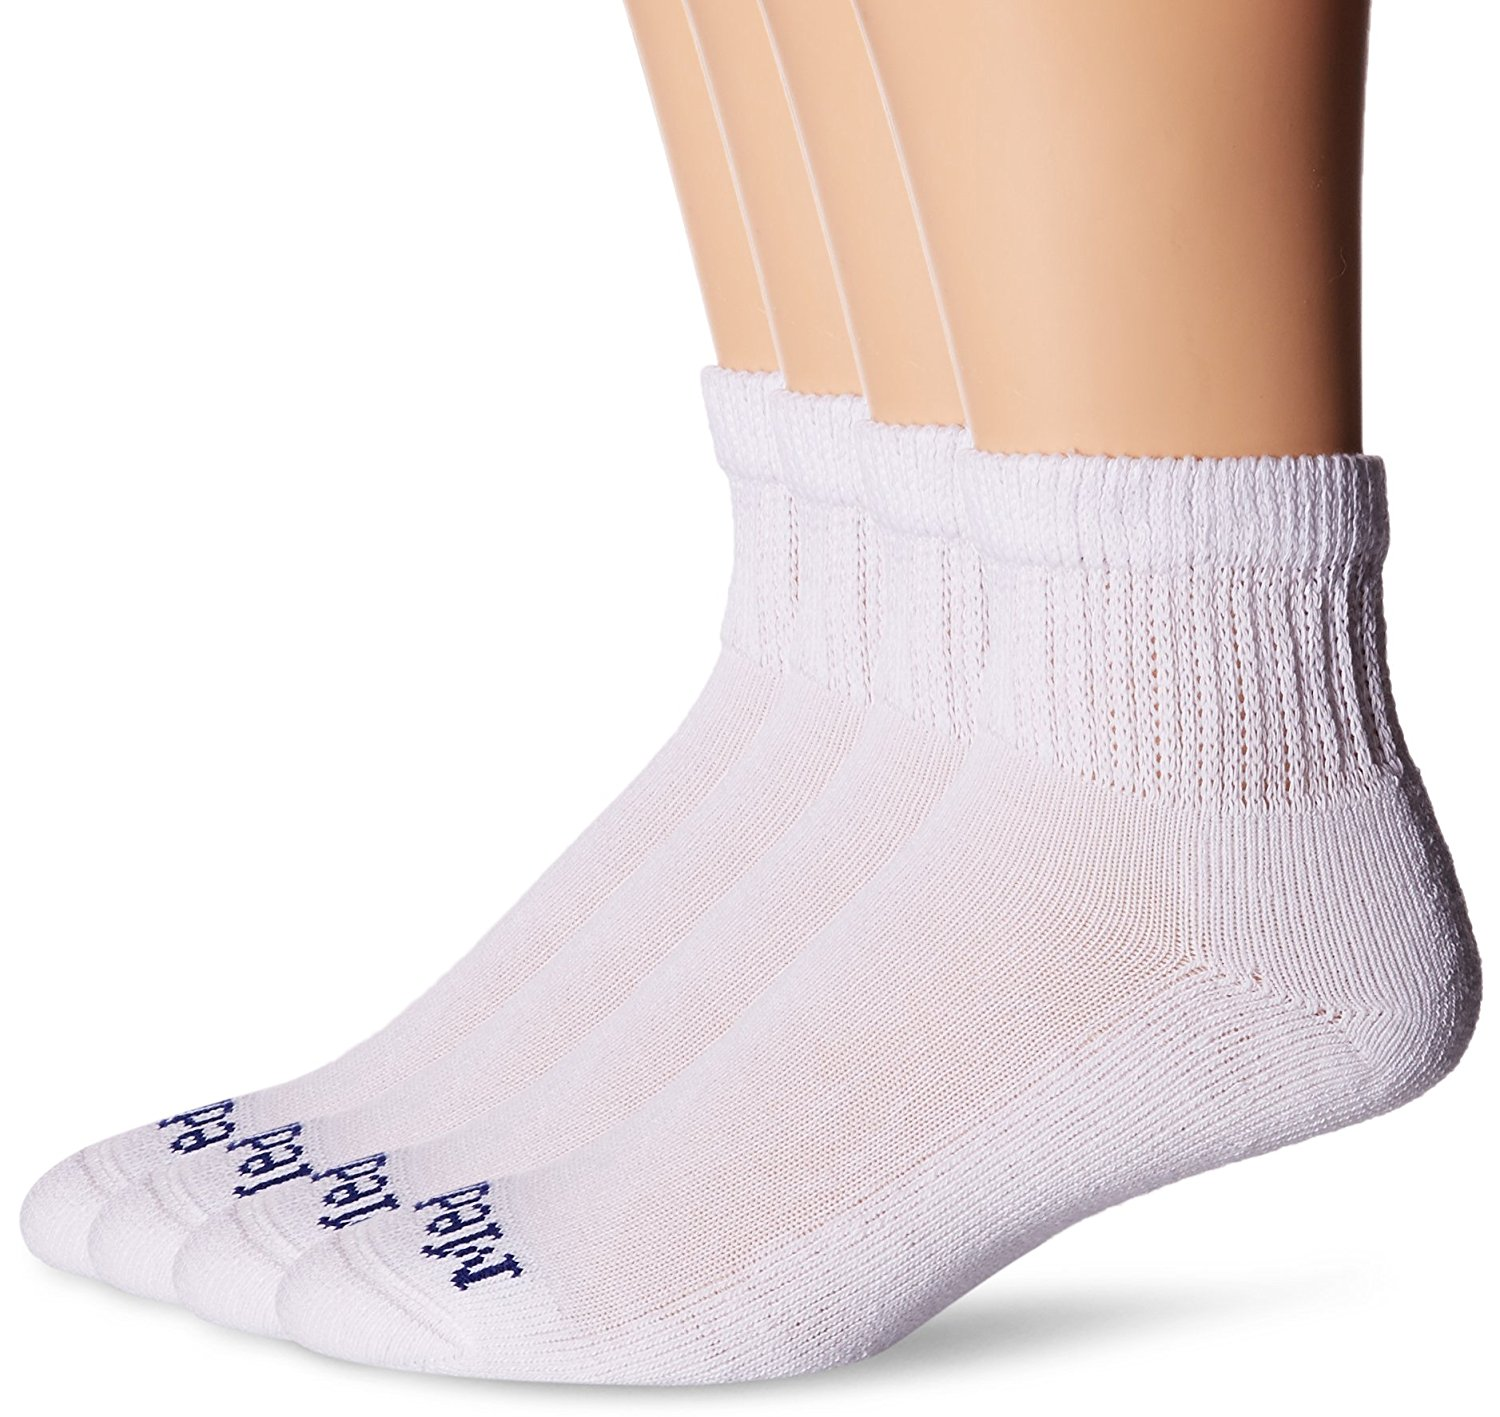 a90968a339 Cheap Medipeds Compression Socks, find Medipeds Compression Socks ...